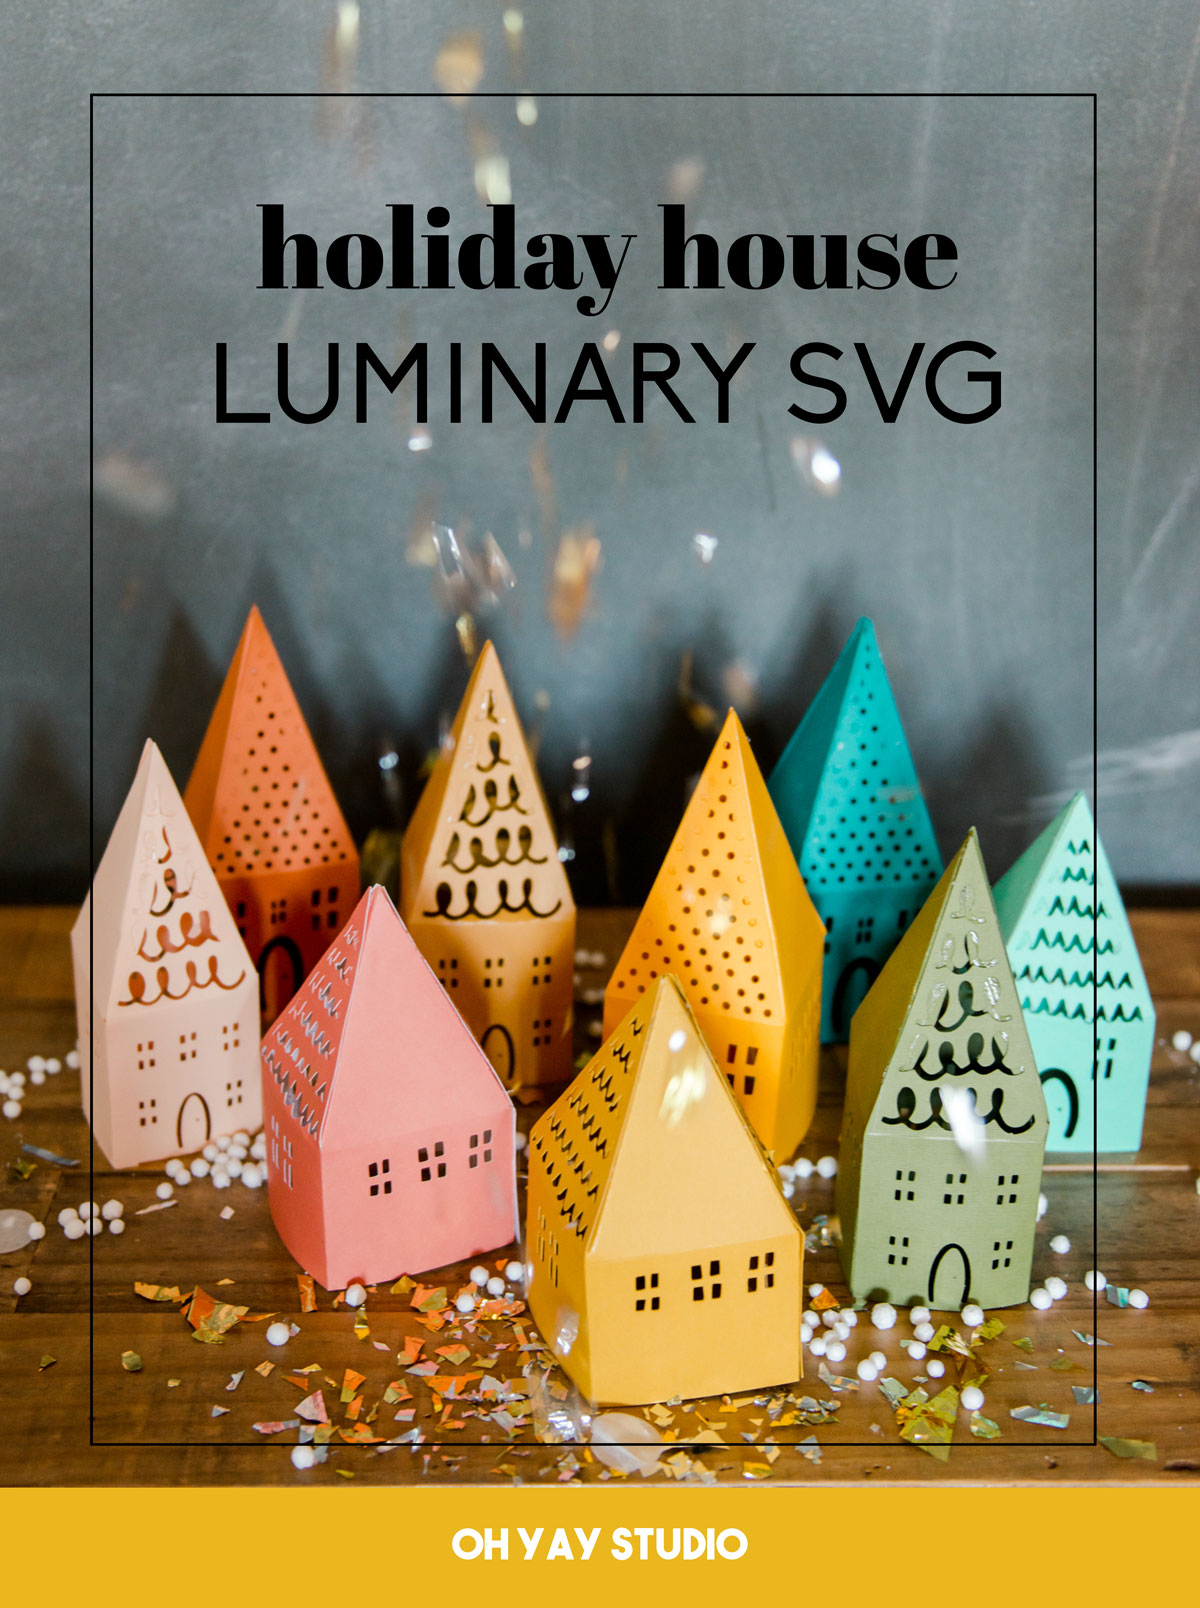 holiday luminary SVG file, Free Christmas SVG files, Free holiday SVG files, Paper SVG file, Svg file for cricut, free cricut designs, oh yay studio SVG files